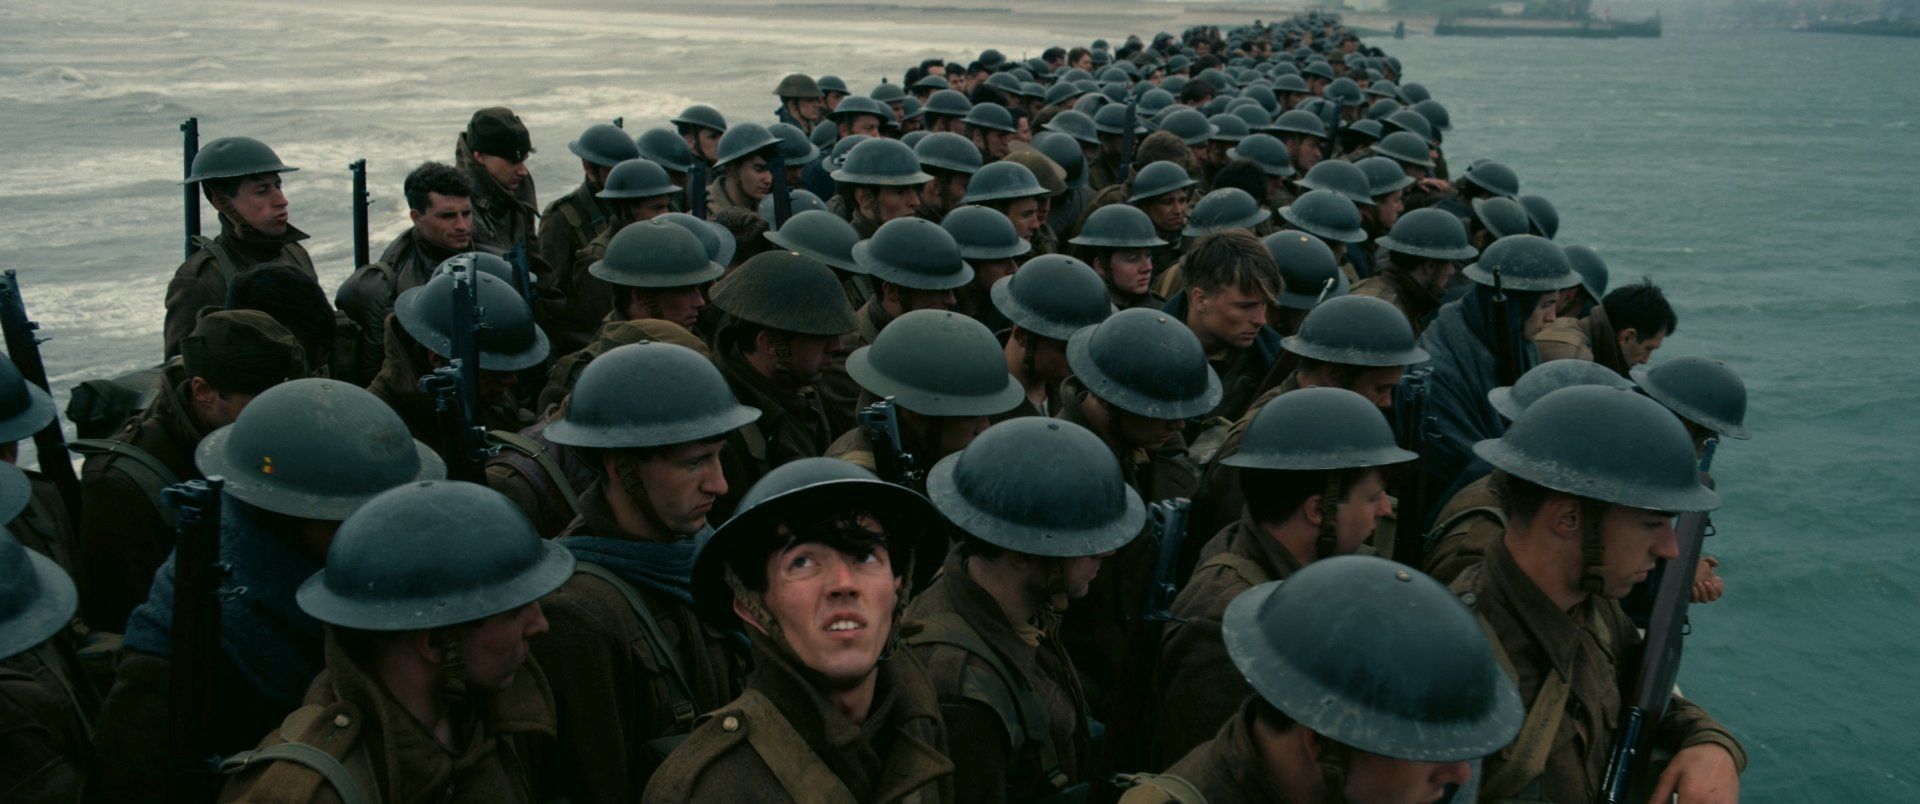 'Dunkirk' Review: 11 Things We Can Tell You (Without Totally Spoiling